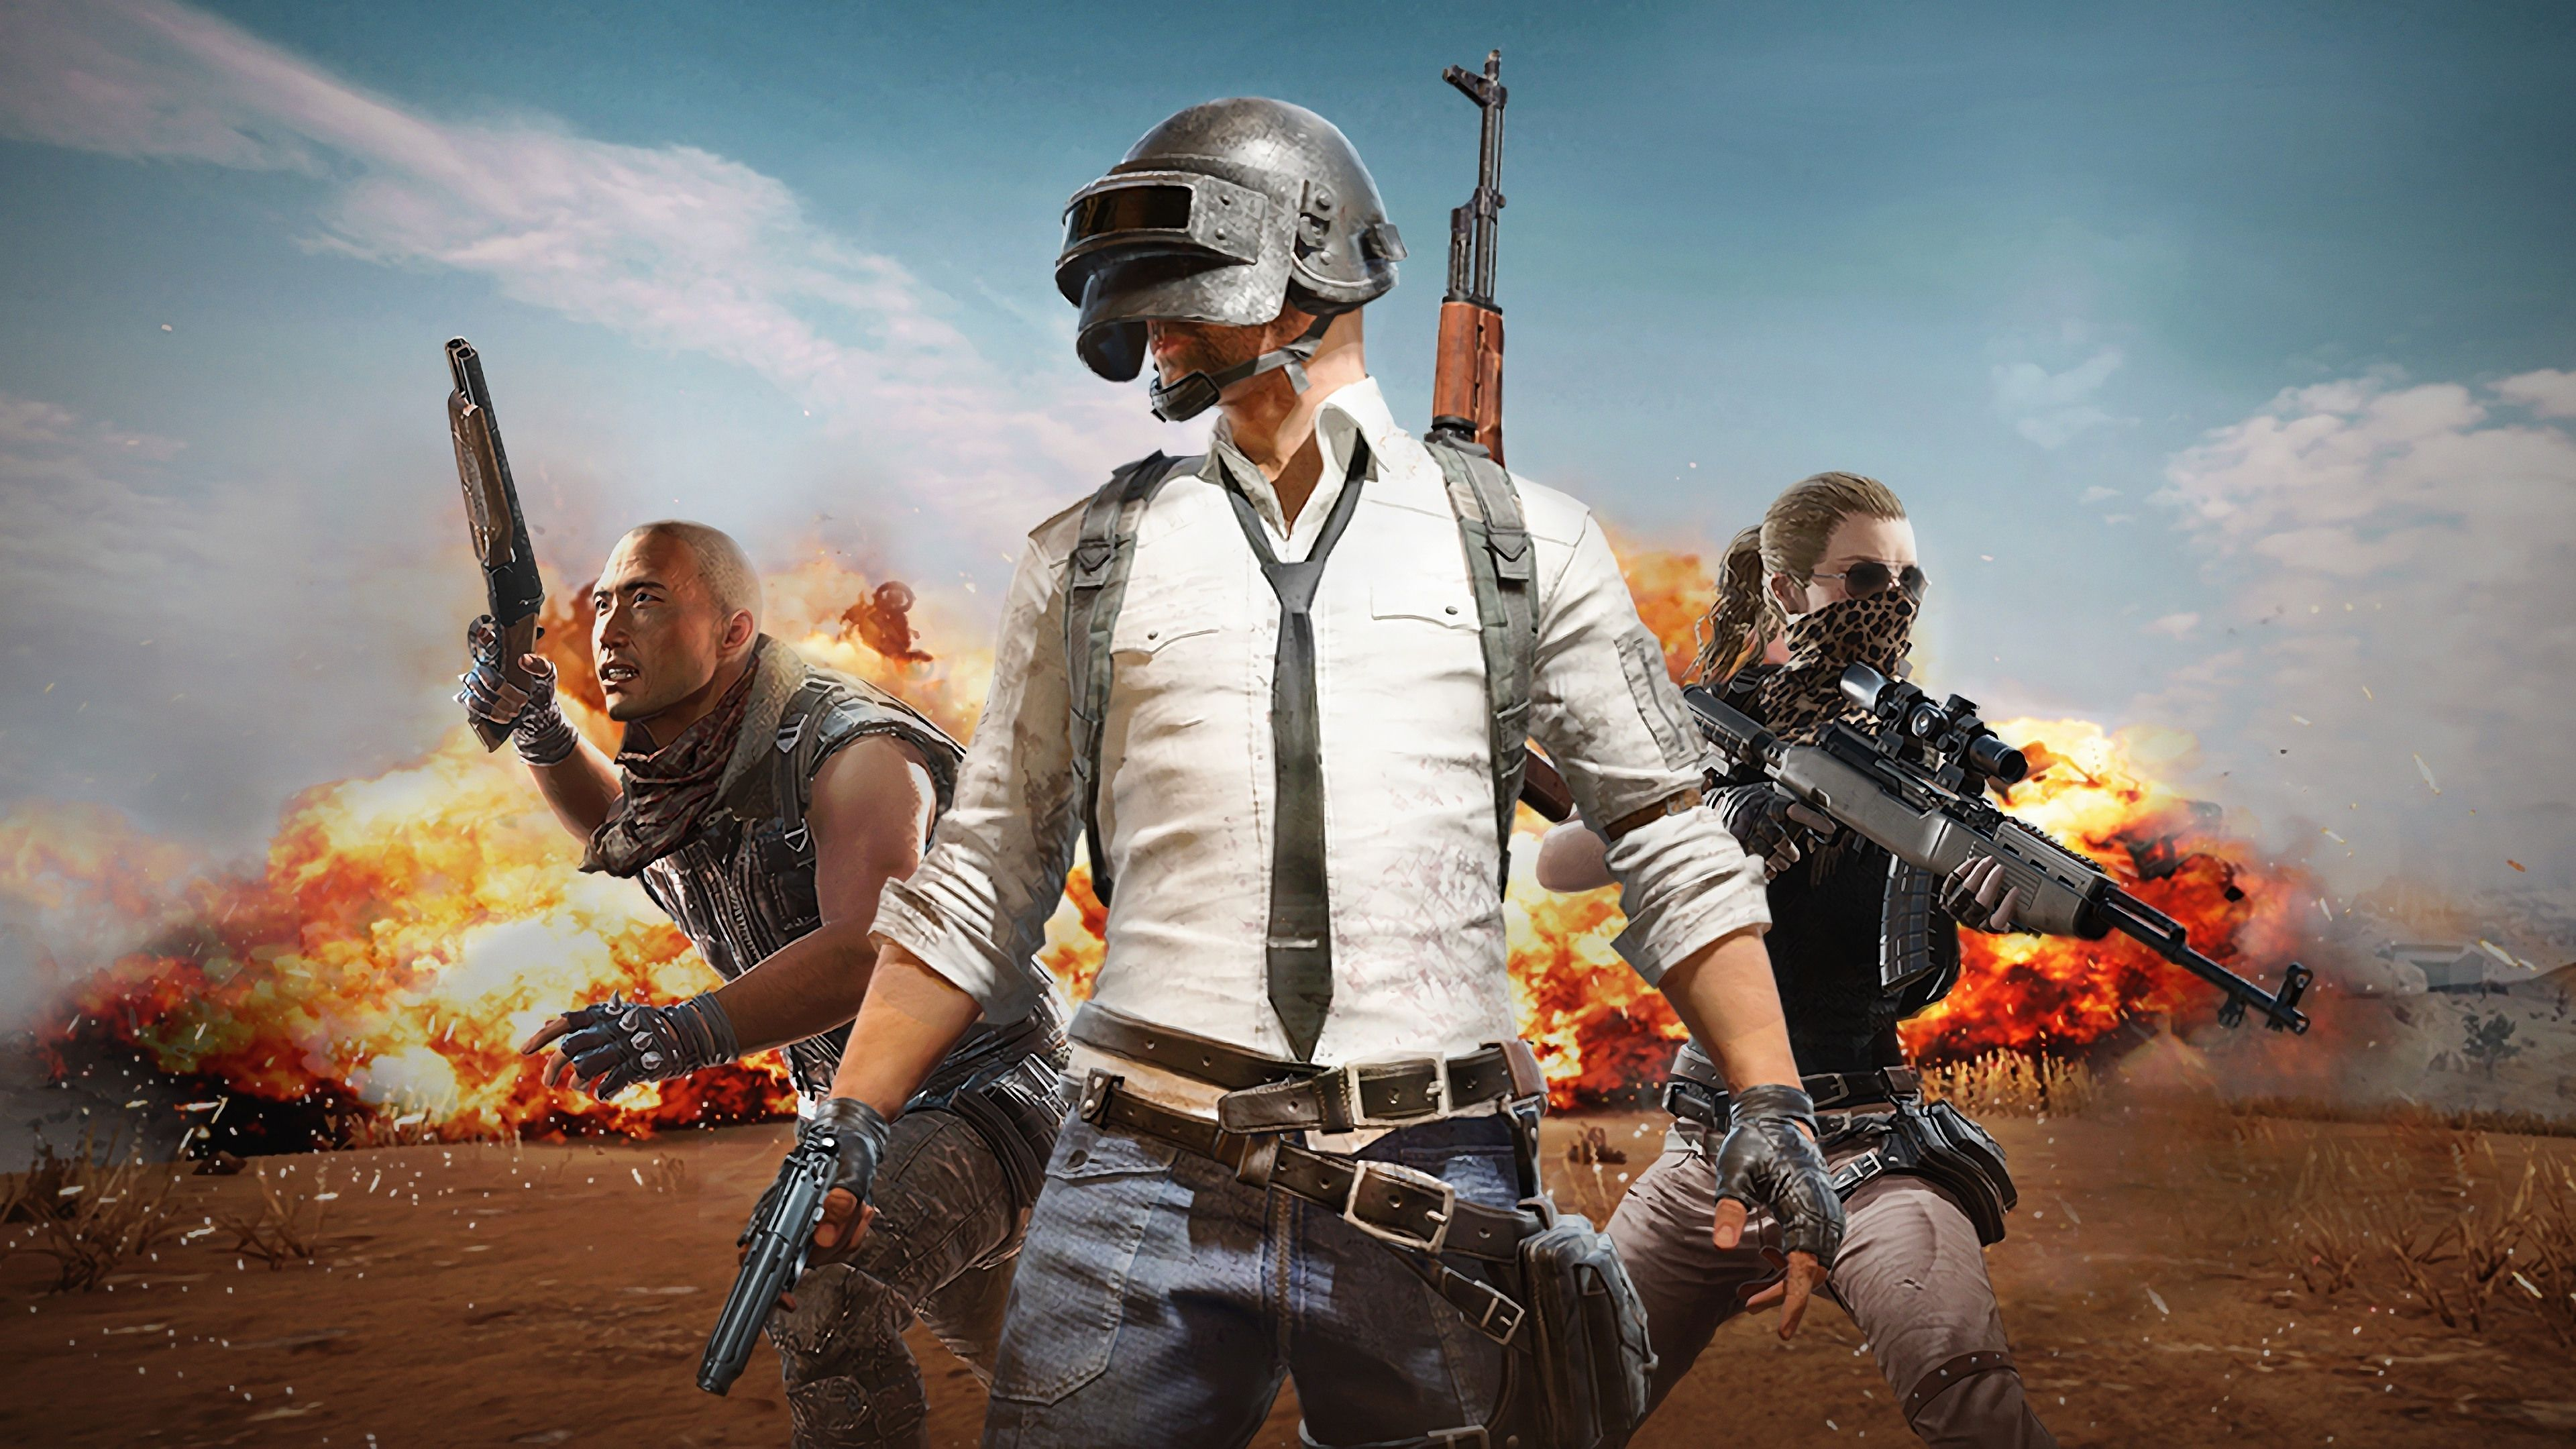 Pubg Wallpaper Phone Hd 4k: Pubg 4k Game Art Pubg Wallpapers, Playerunknowns